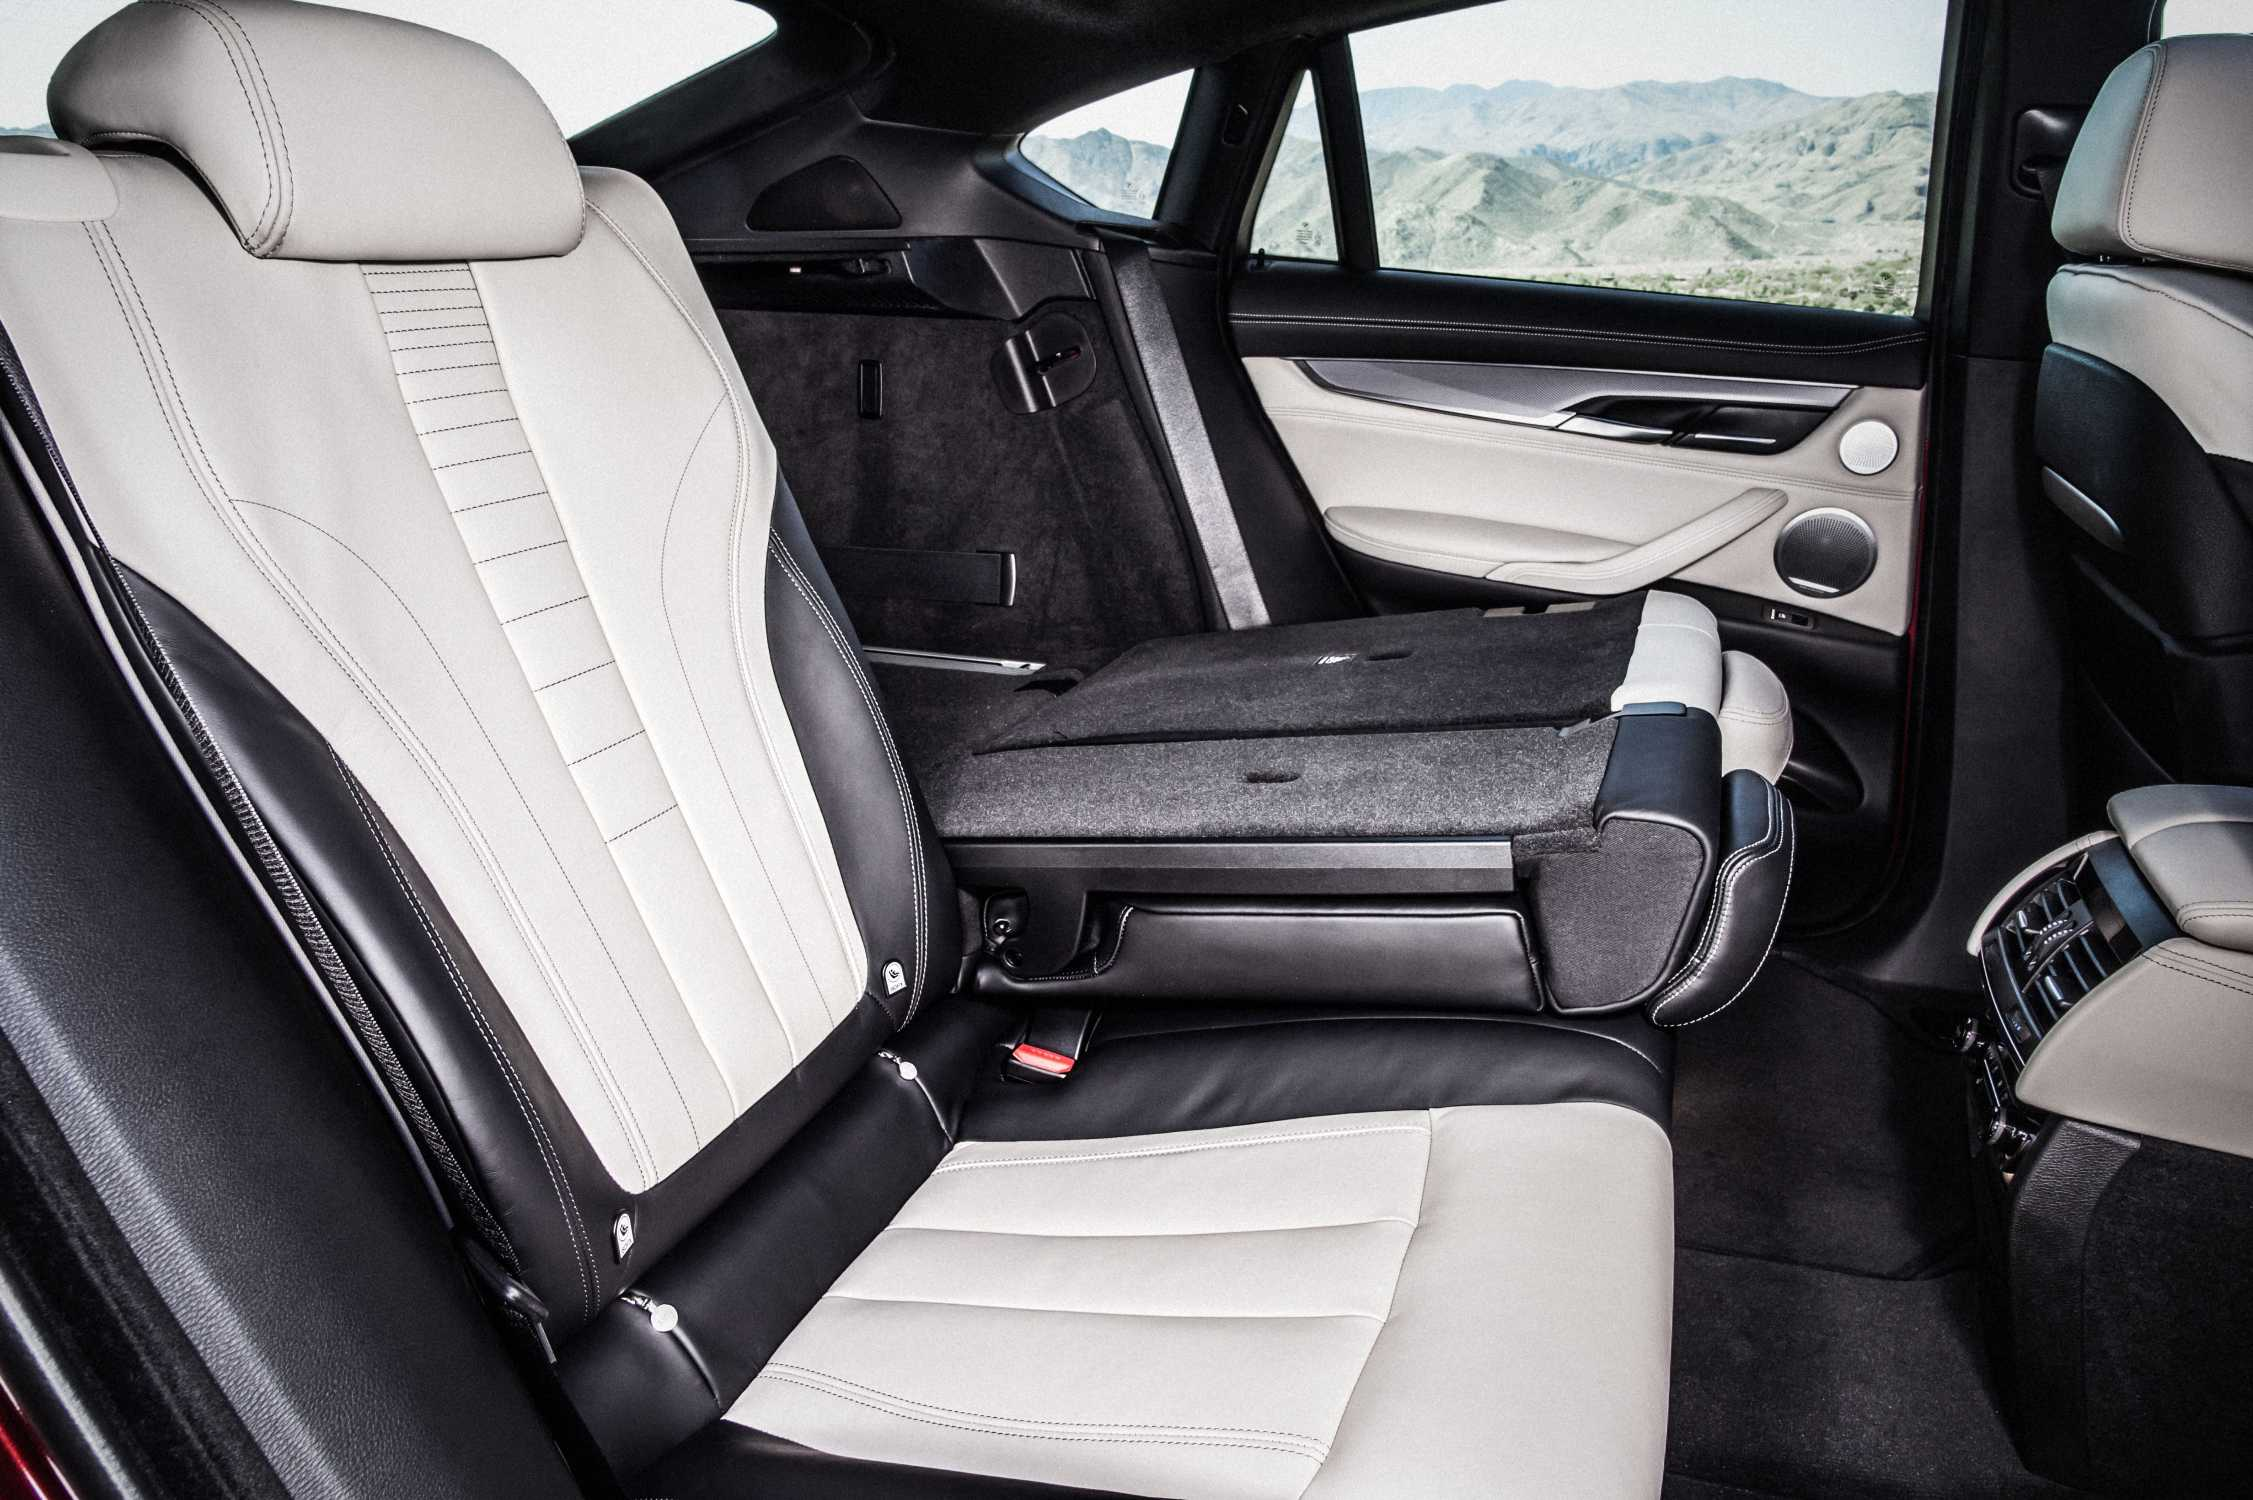 The New Bmw X6 M50d Bicolour Leather Nappa With Extended Contents Ivory White Black Interior